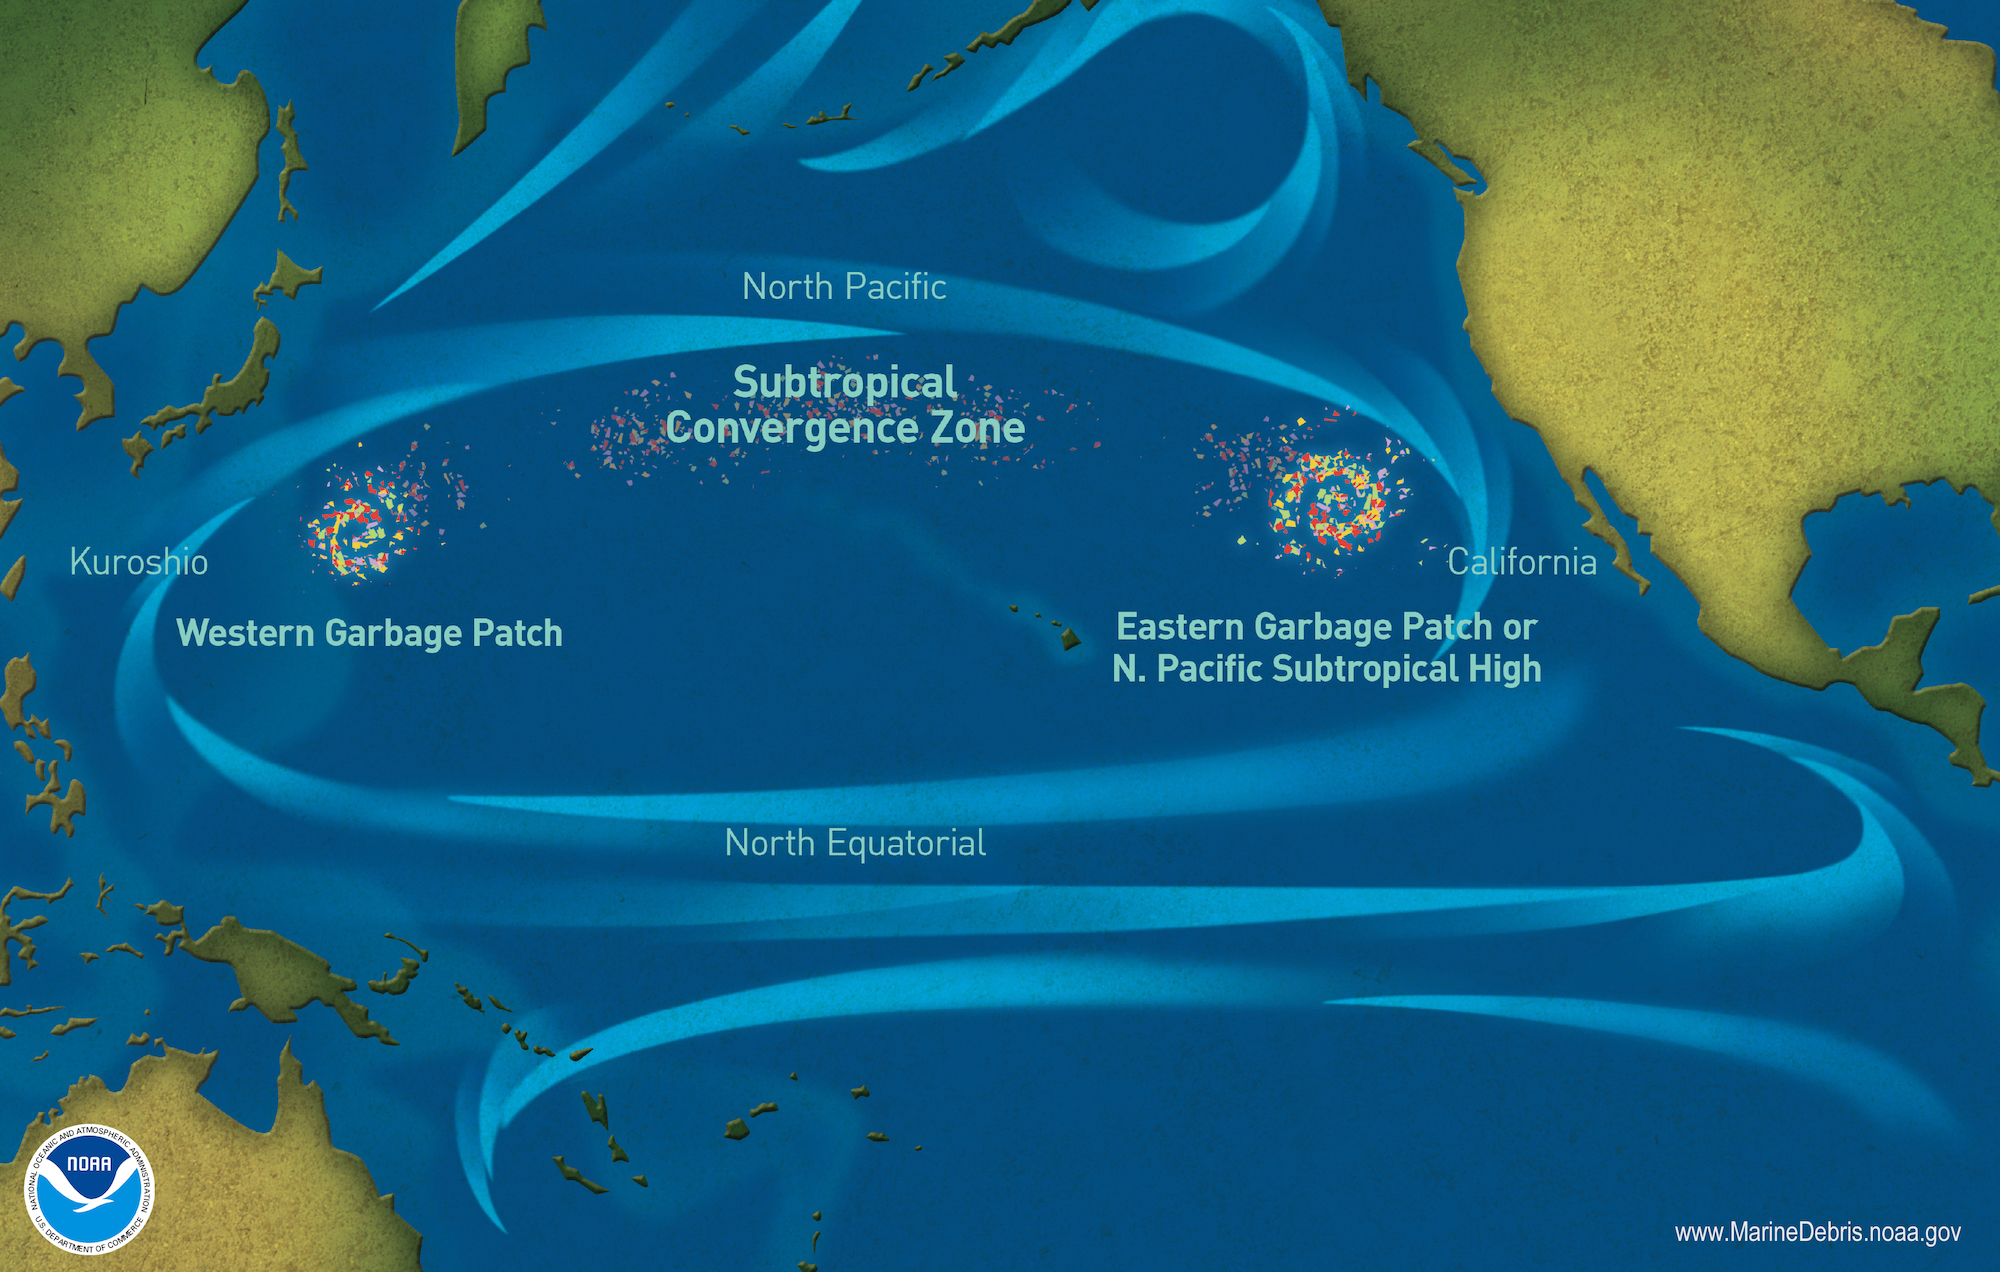 Map of marine debris accumulation locations in the North Pacific Ocean